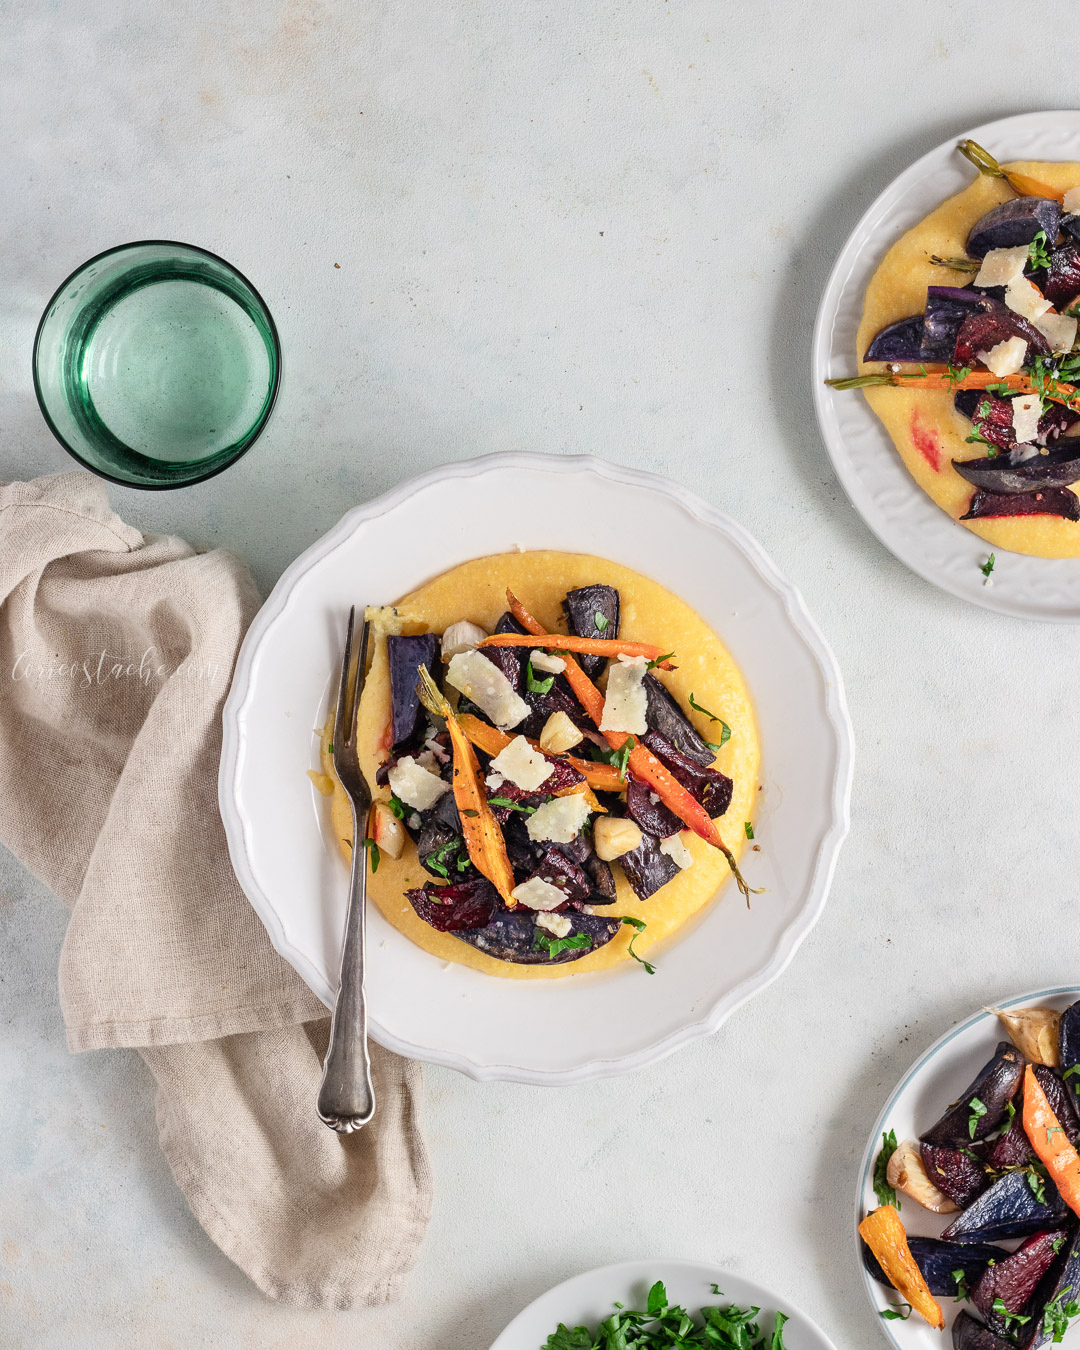 Creamy Polenta & Perfect Roasted Veggies